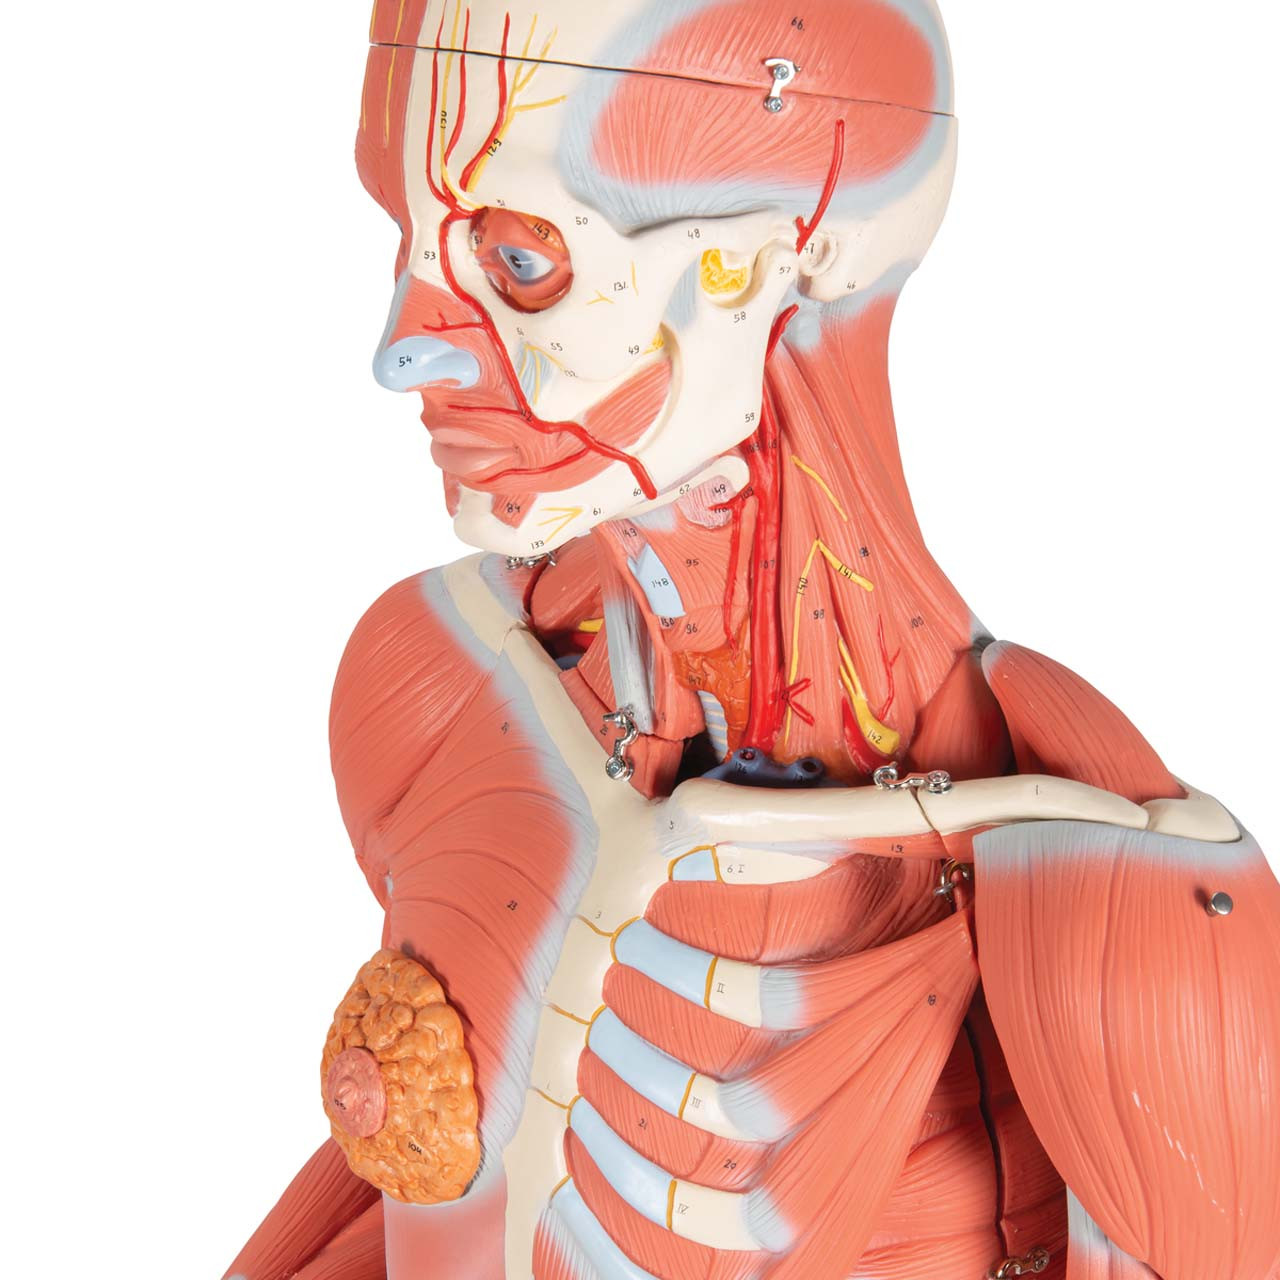 3/4 Life-Size Female Muscle Model on a metal stand without internal organs, 23-part